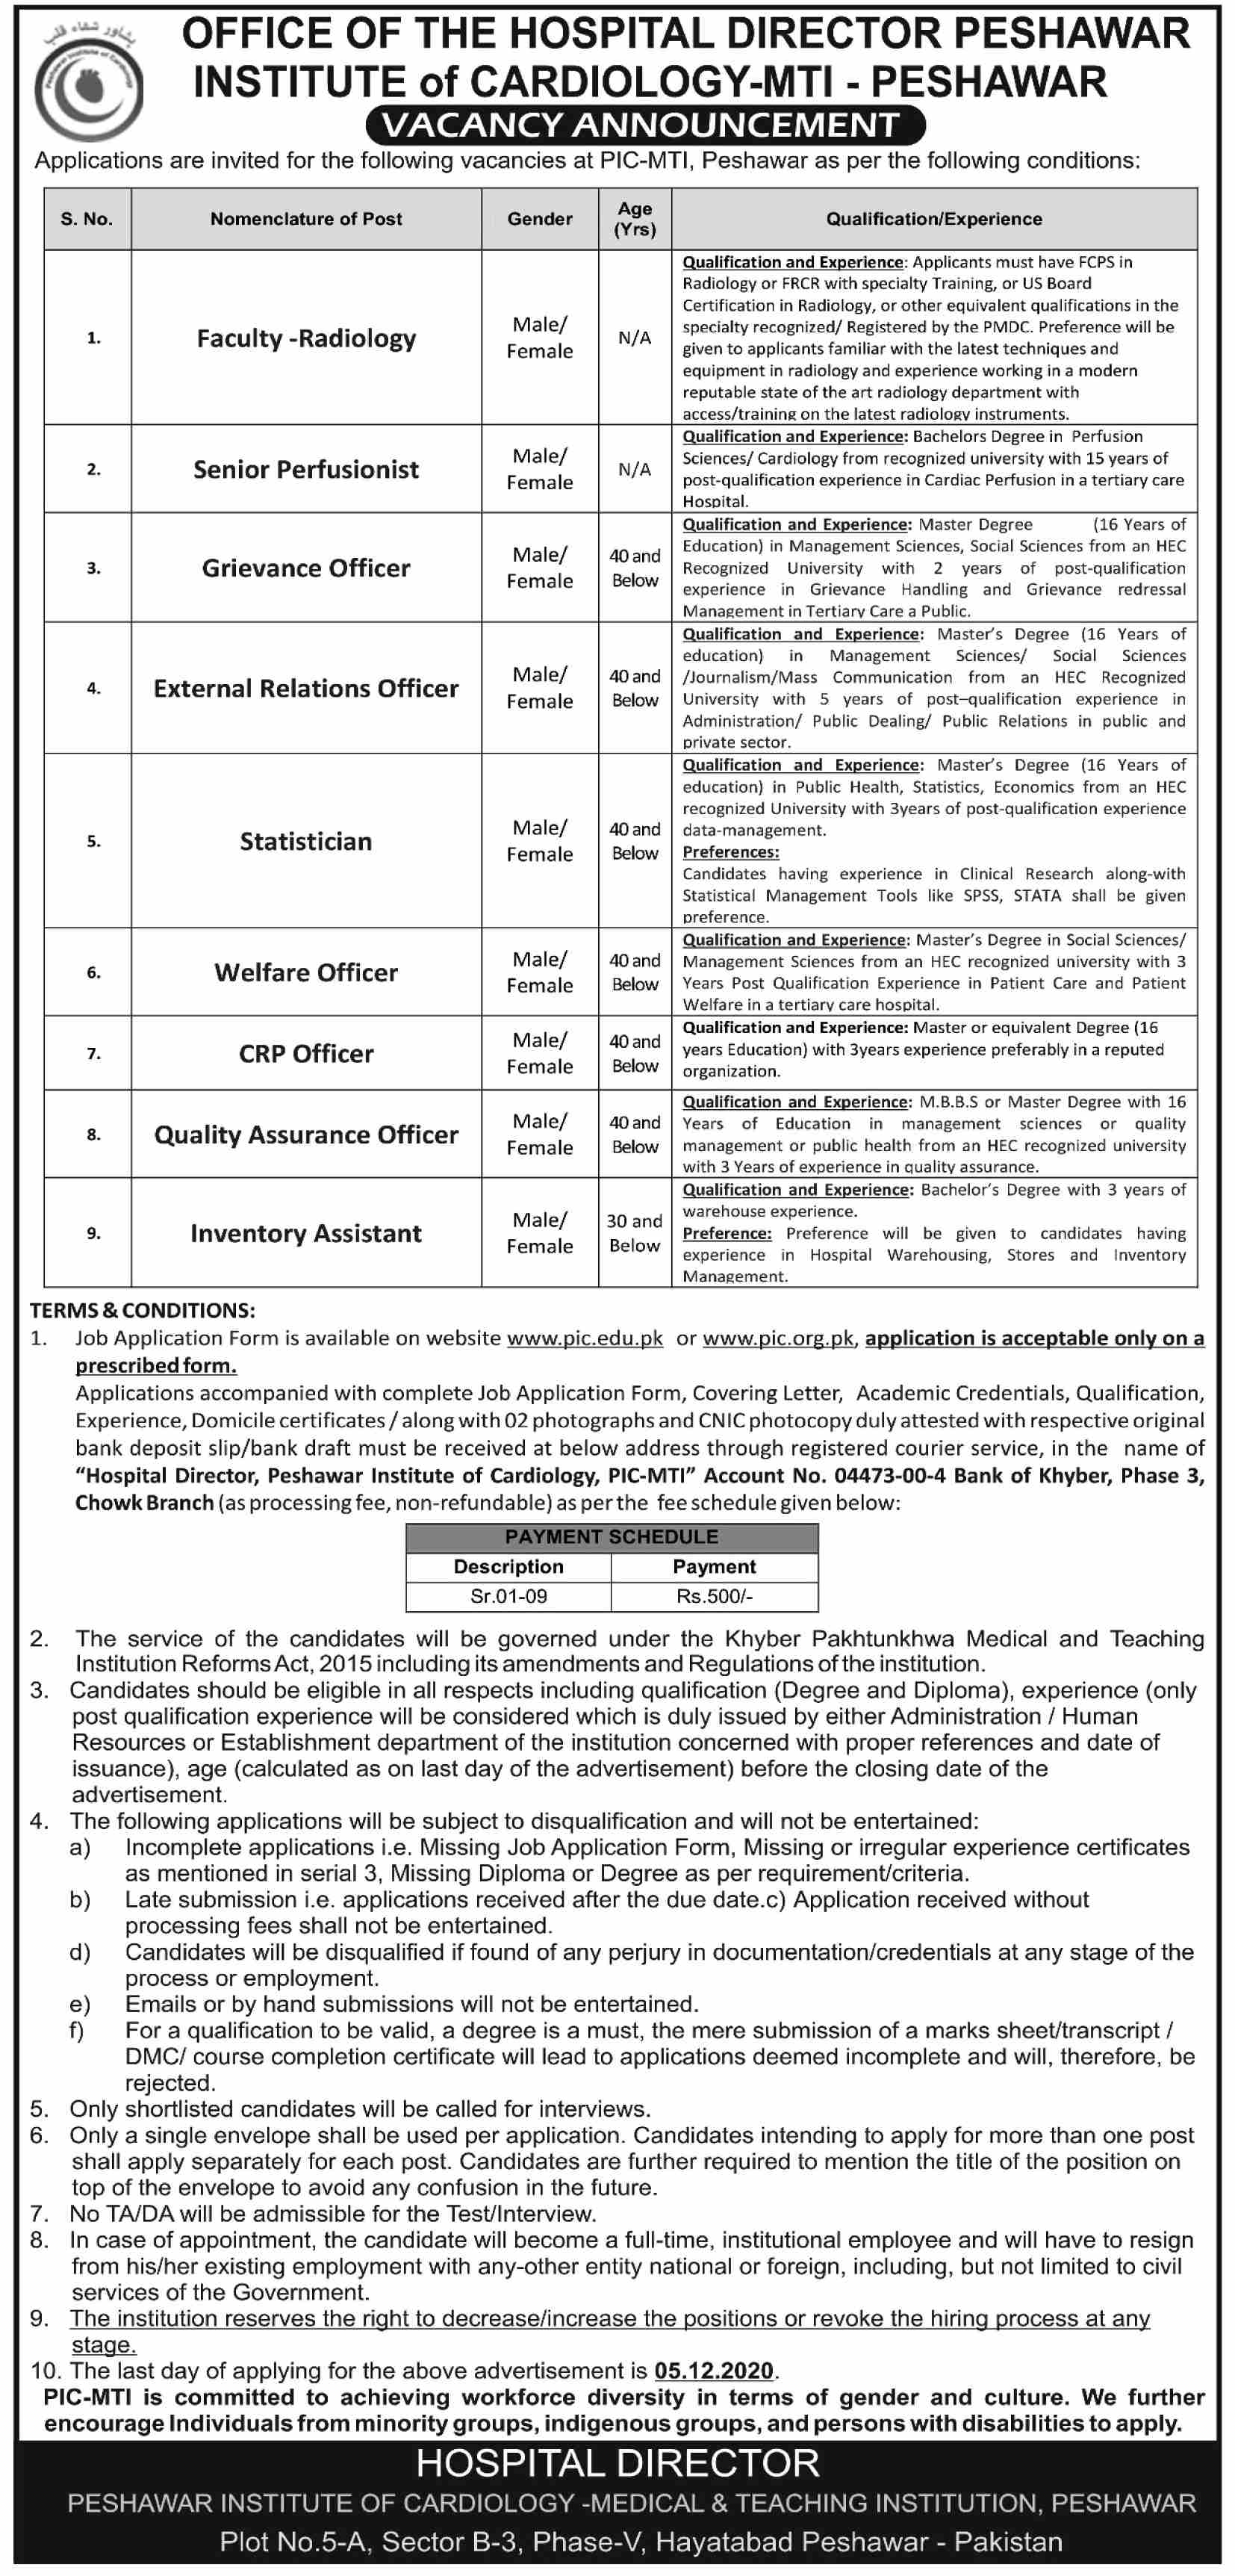 Peshawar Institute Of Cardiology jobs newspaper ad for Grievance Officer in Peshawar